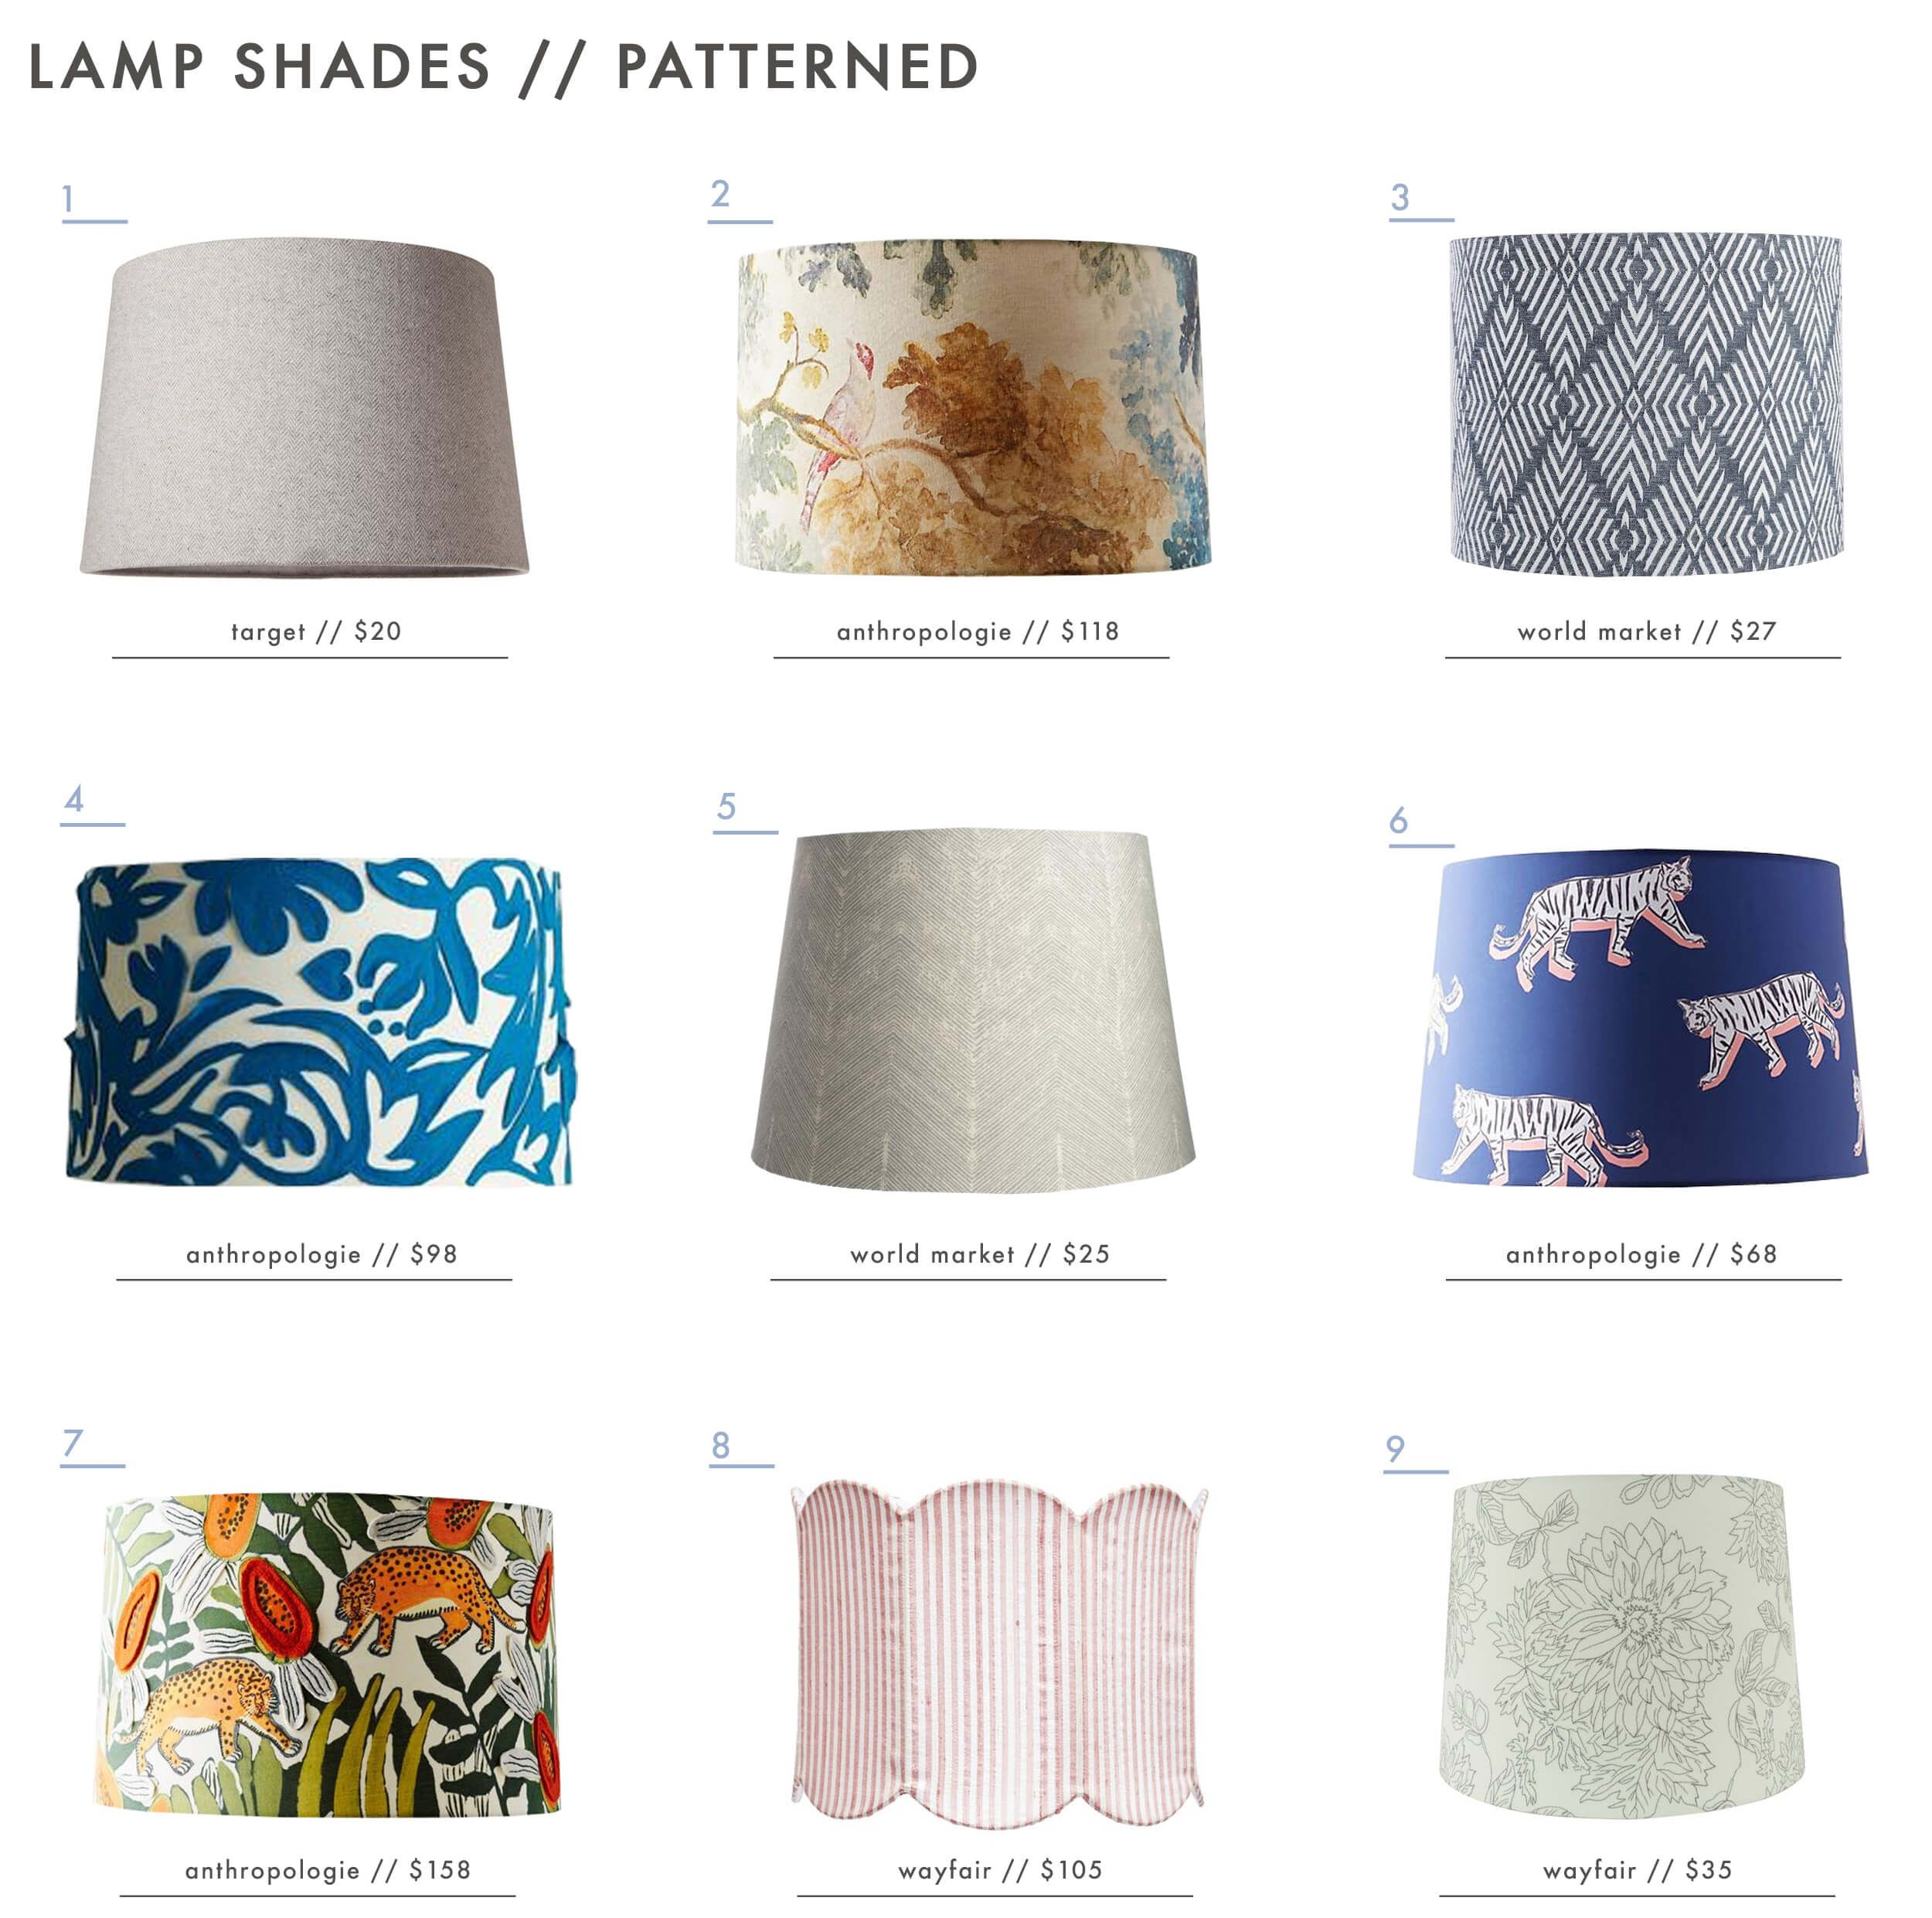 The Surprising Value Of Colored Textured Or Patterned Lampshades Emily Henderson Patterned Lampshades Lampshade Designs Colorful Lamp Shades